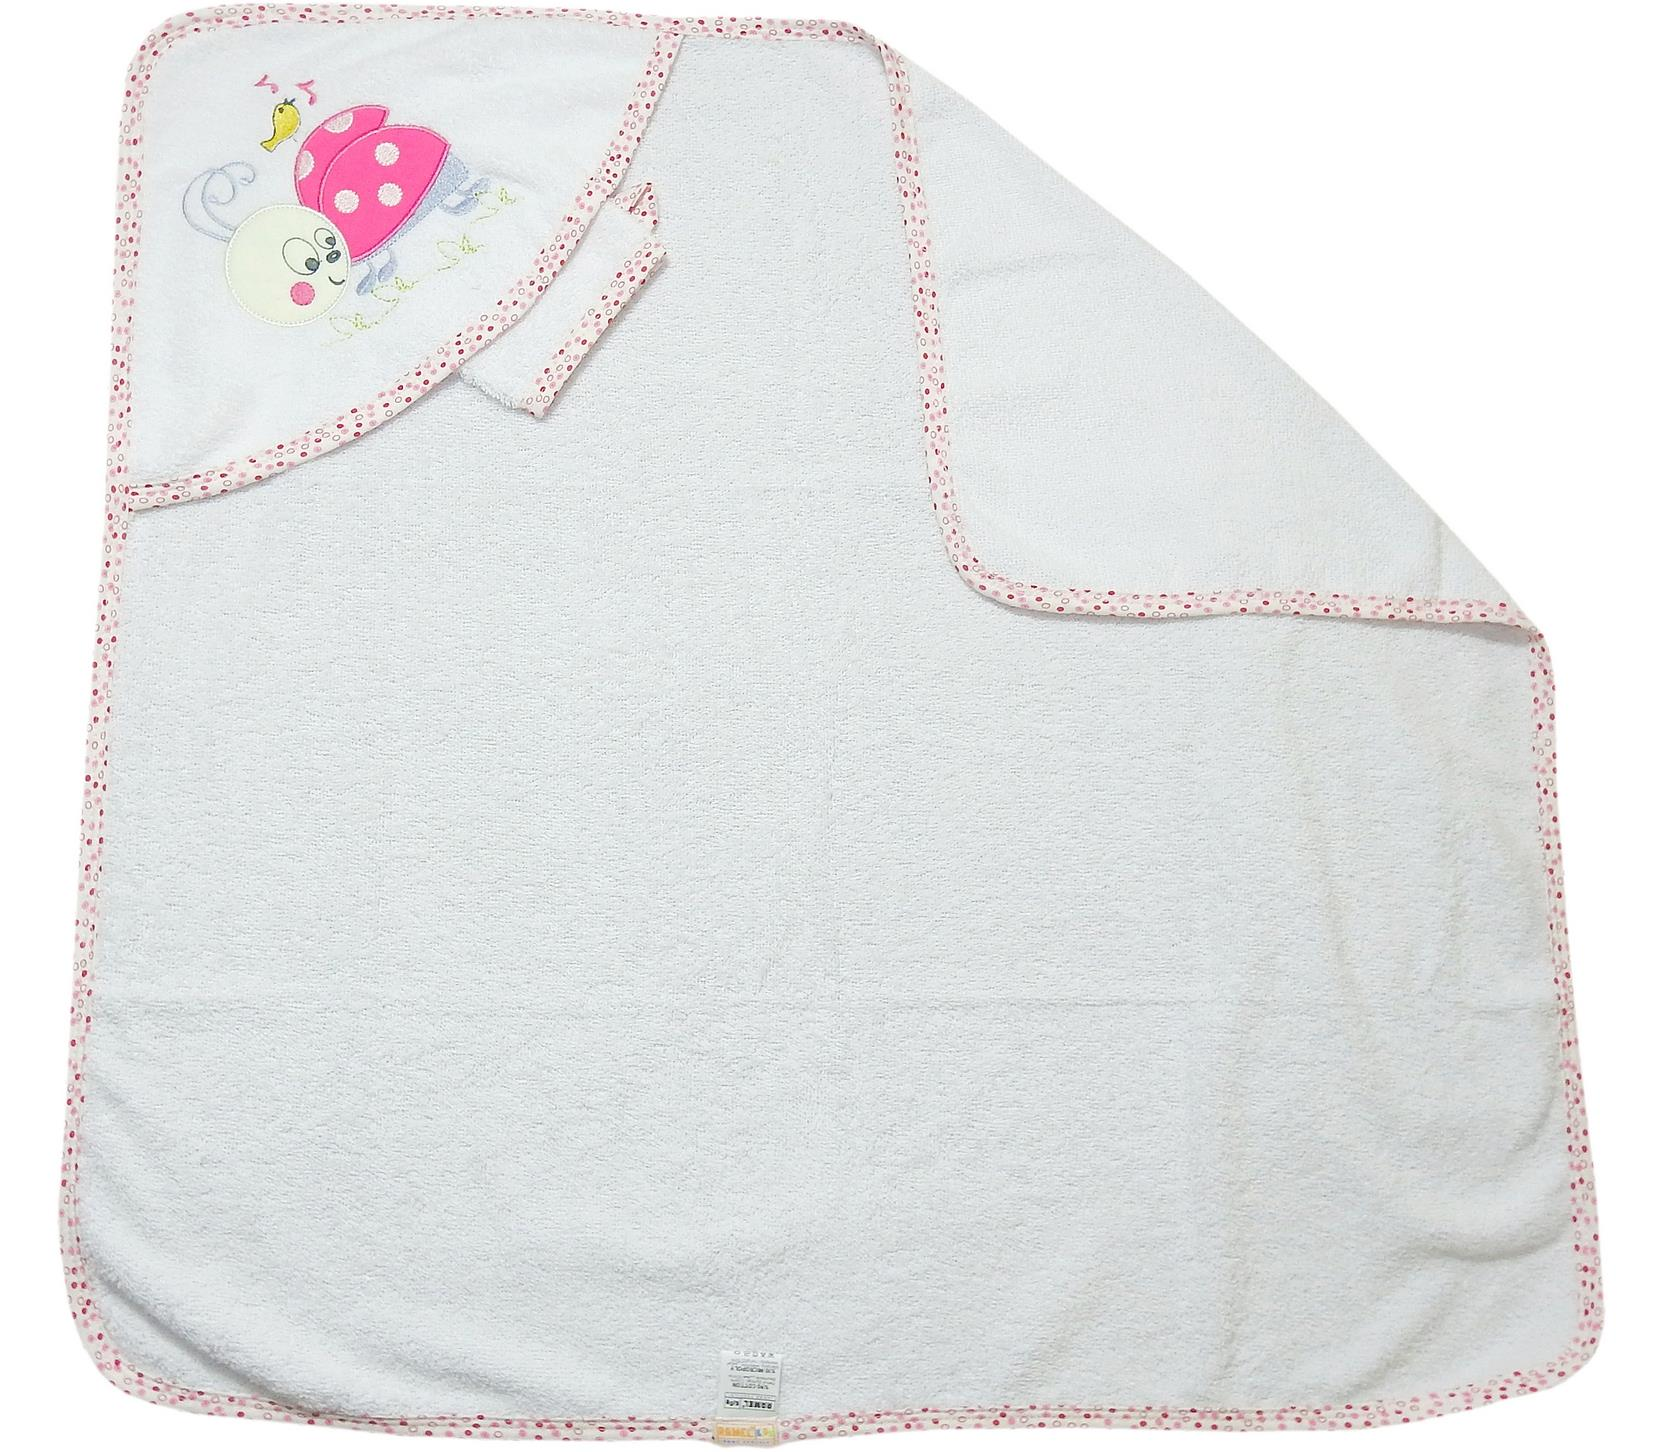 441 Wholesale towels for baby